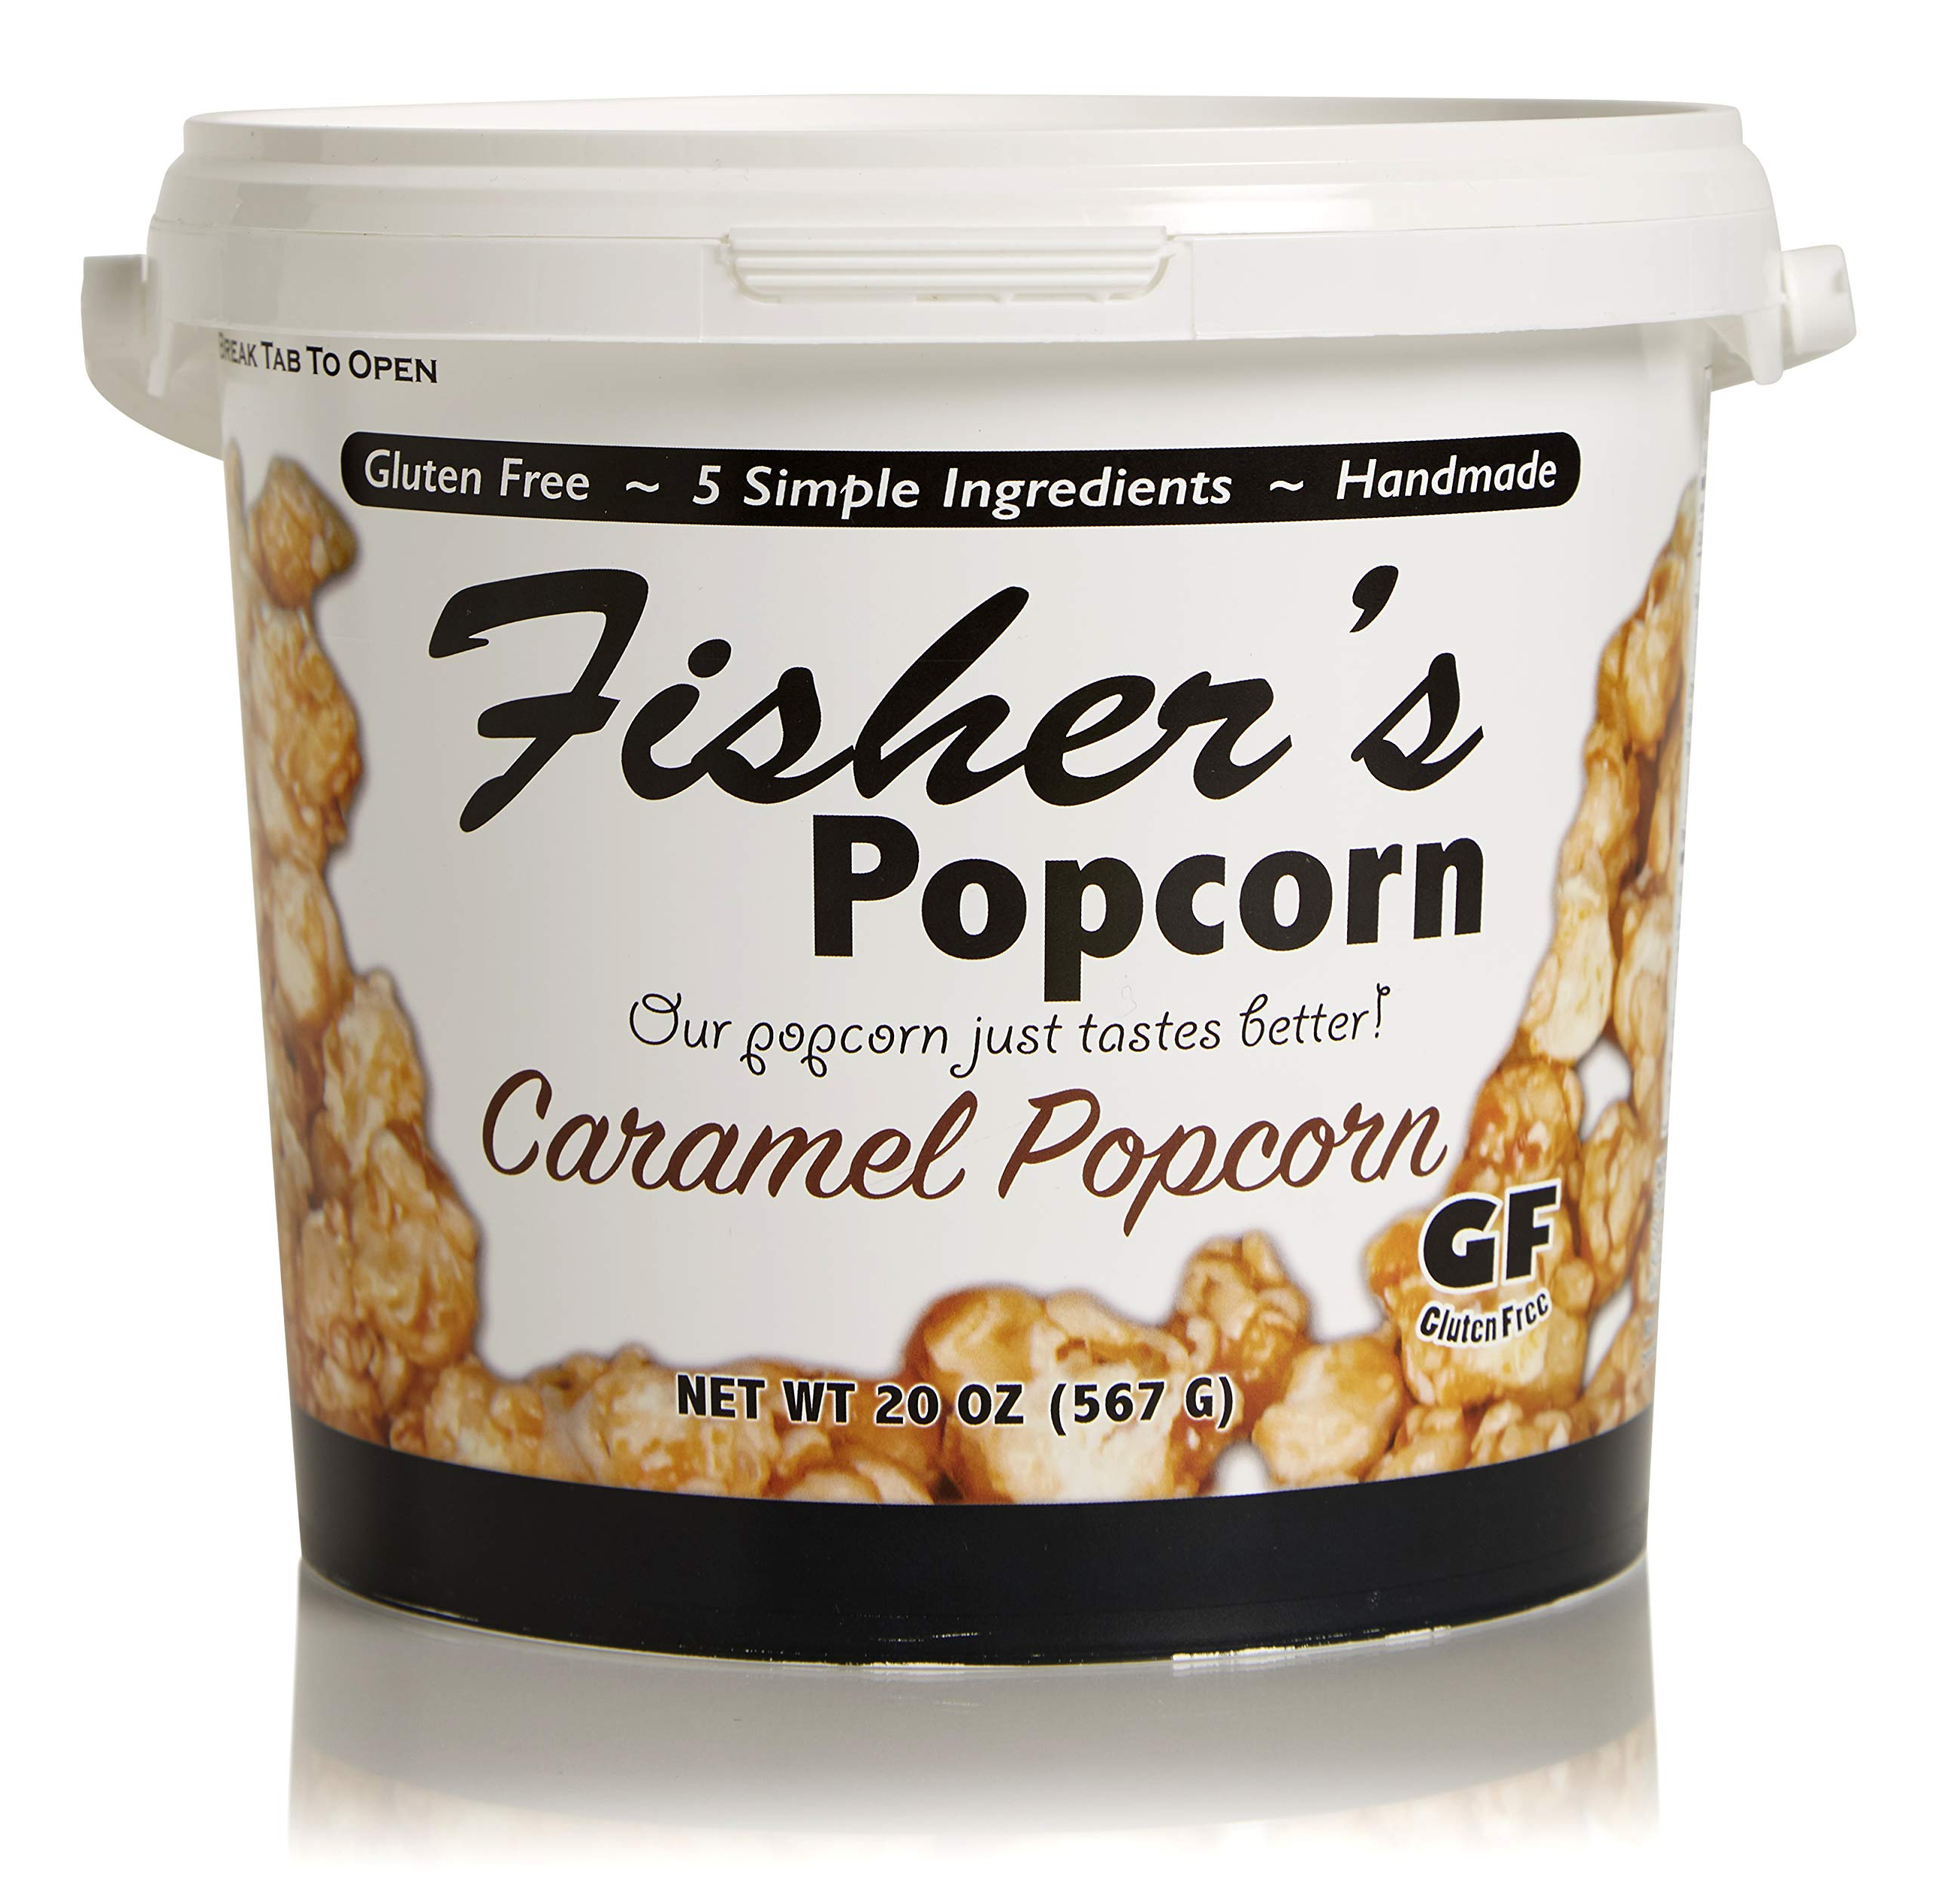 Fisher's Popcorn Caramel Popcorn, Gluten Free, 5 Simple Ingredients, Handmade, No Preservatives, No High Fructose Corn Syrup, Zero Trans Fat, 20oz Tub (1 Gallon) by Fisher's Popcorn